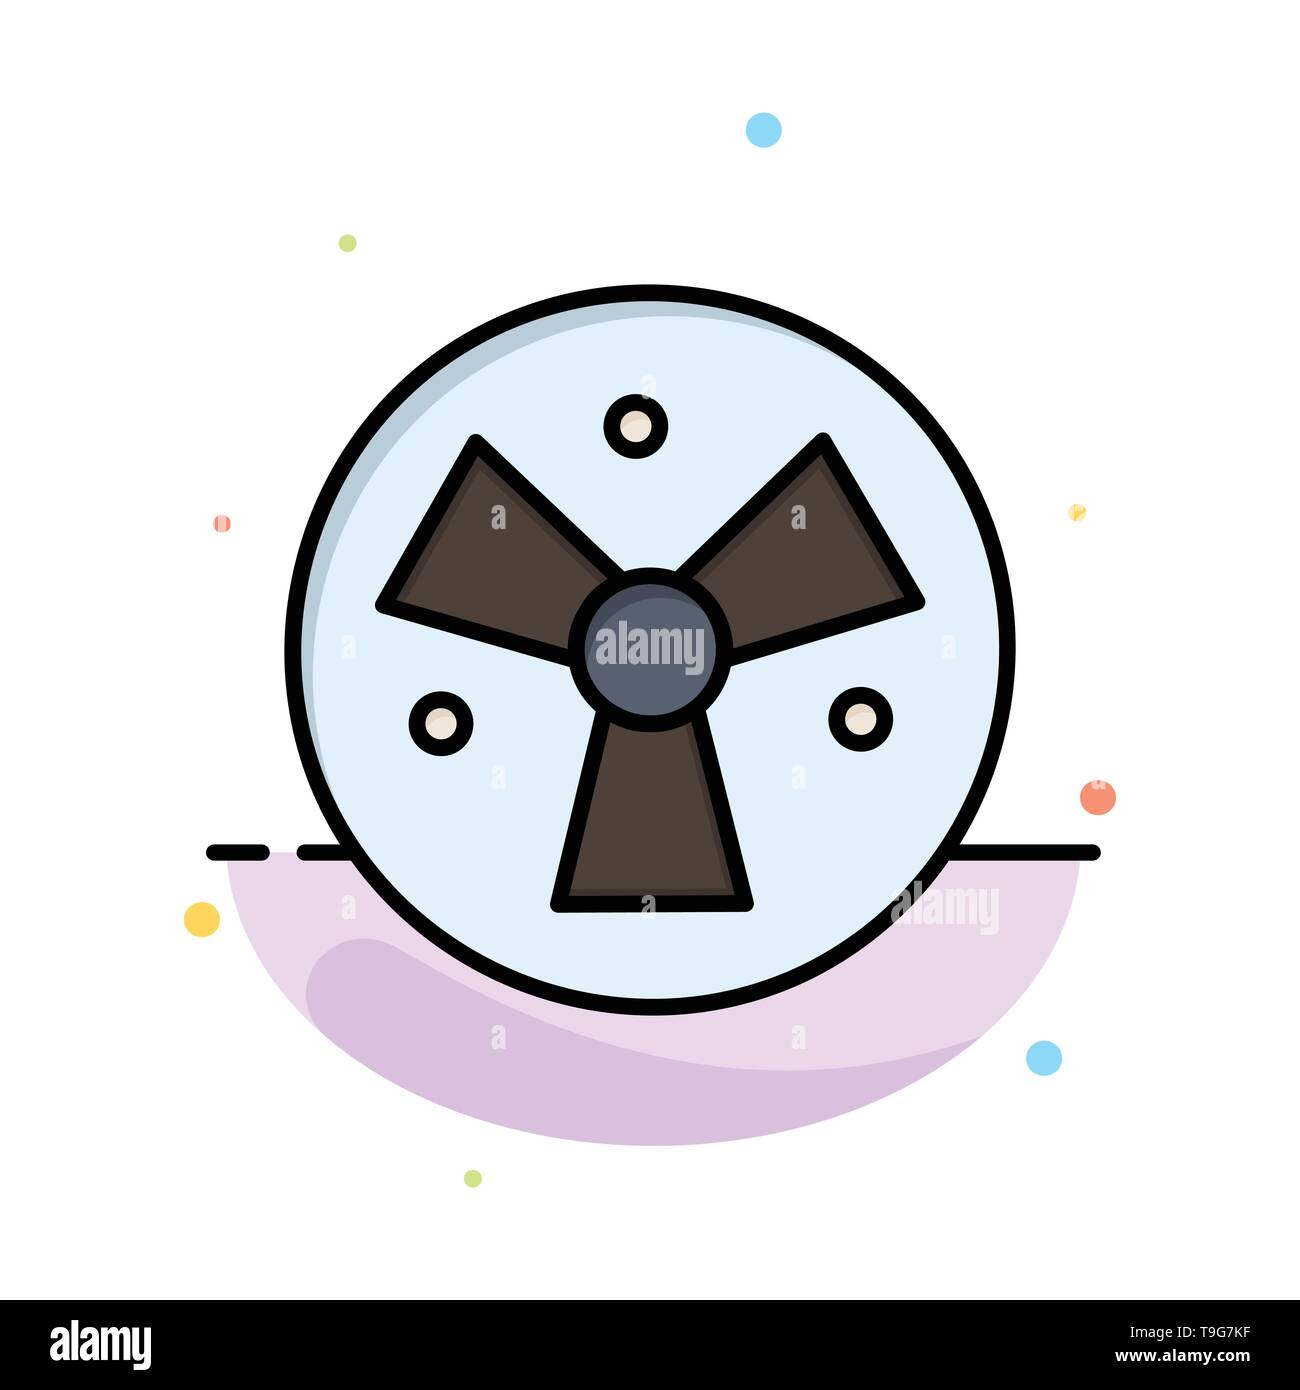 Radiation, Warning, Medical, Fan Abstract Flat Color Icon Template - Stock Image